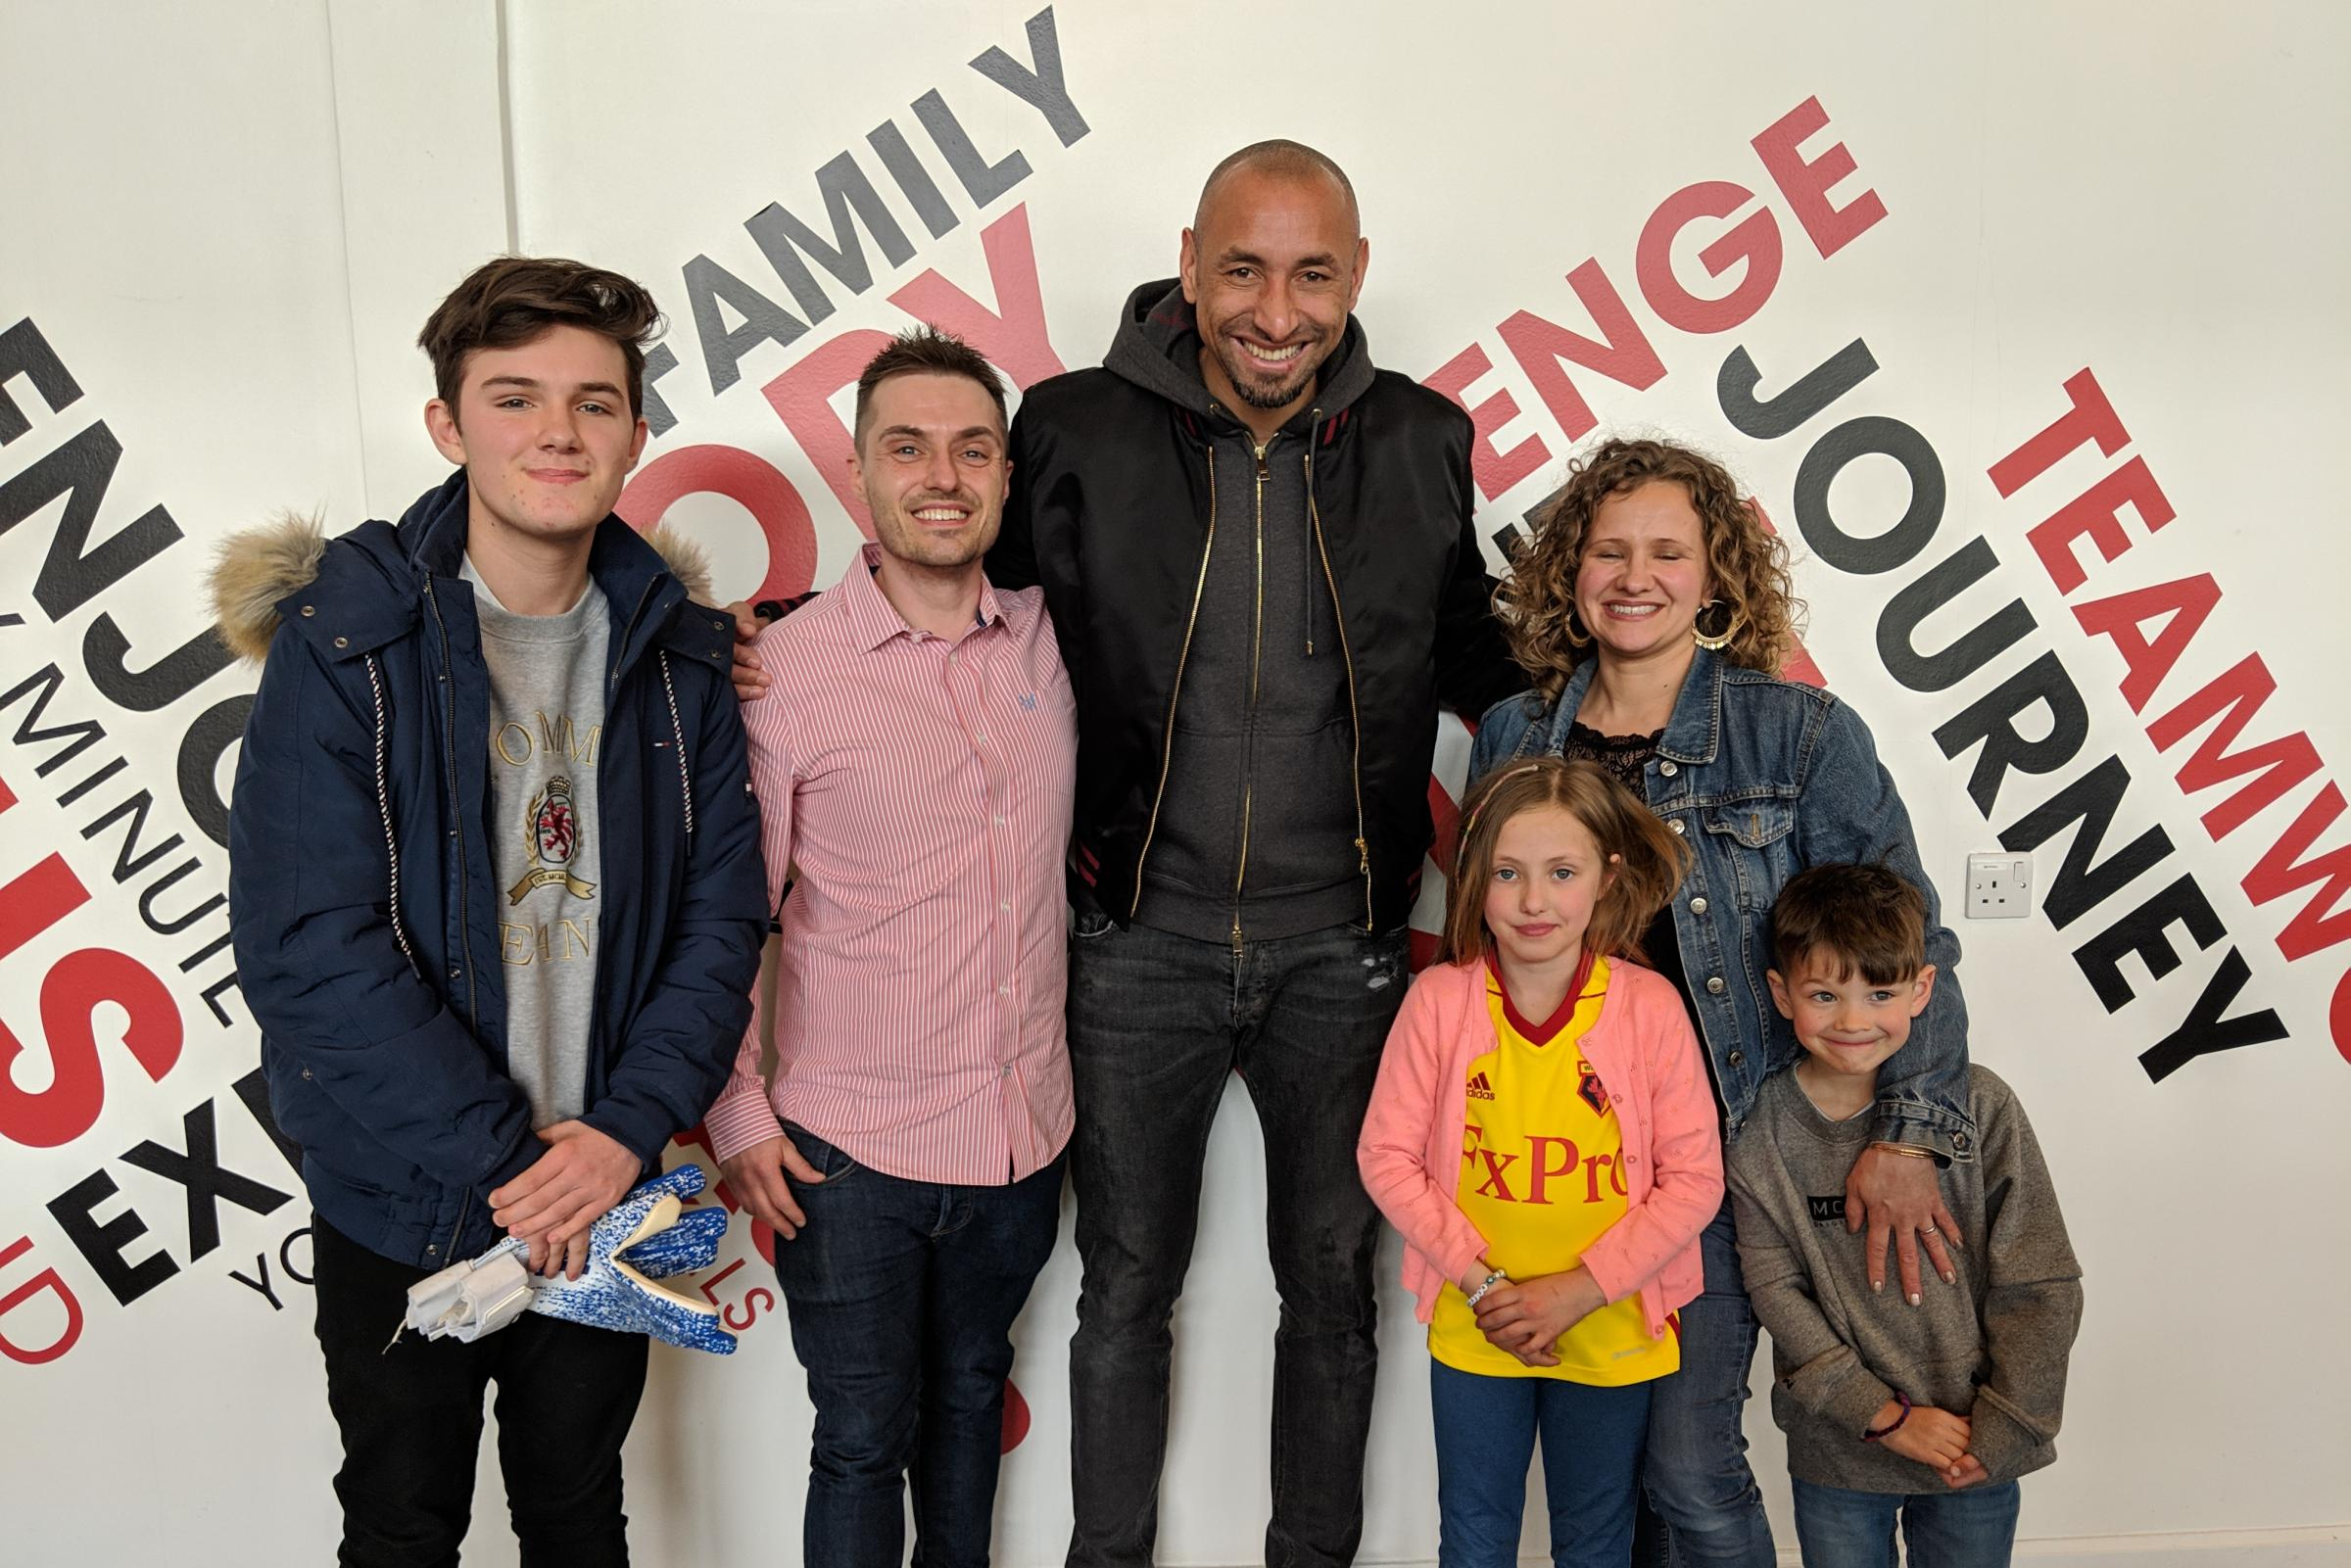 Young fans meet Watford star after he spotted their celebrations in Wembley crowd